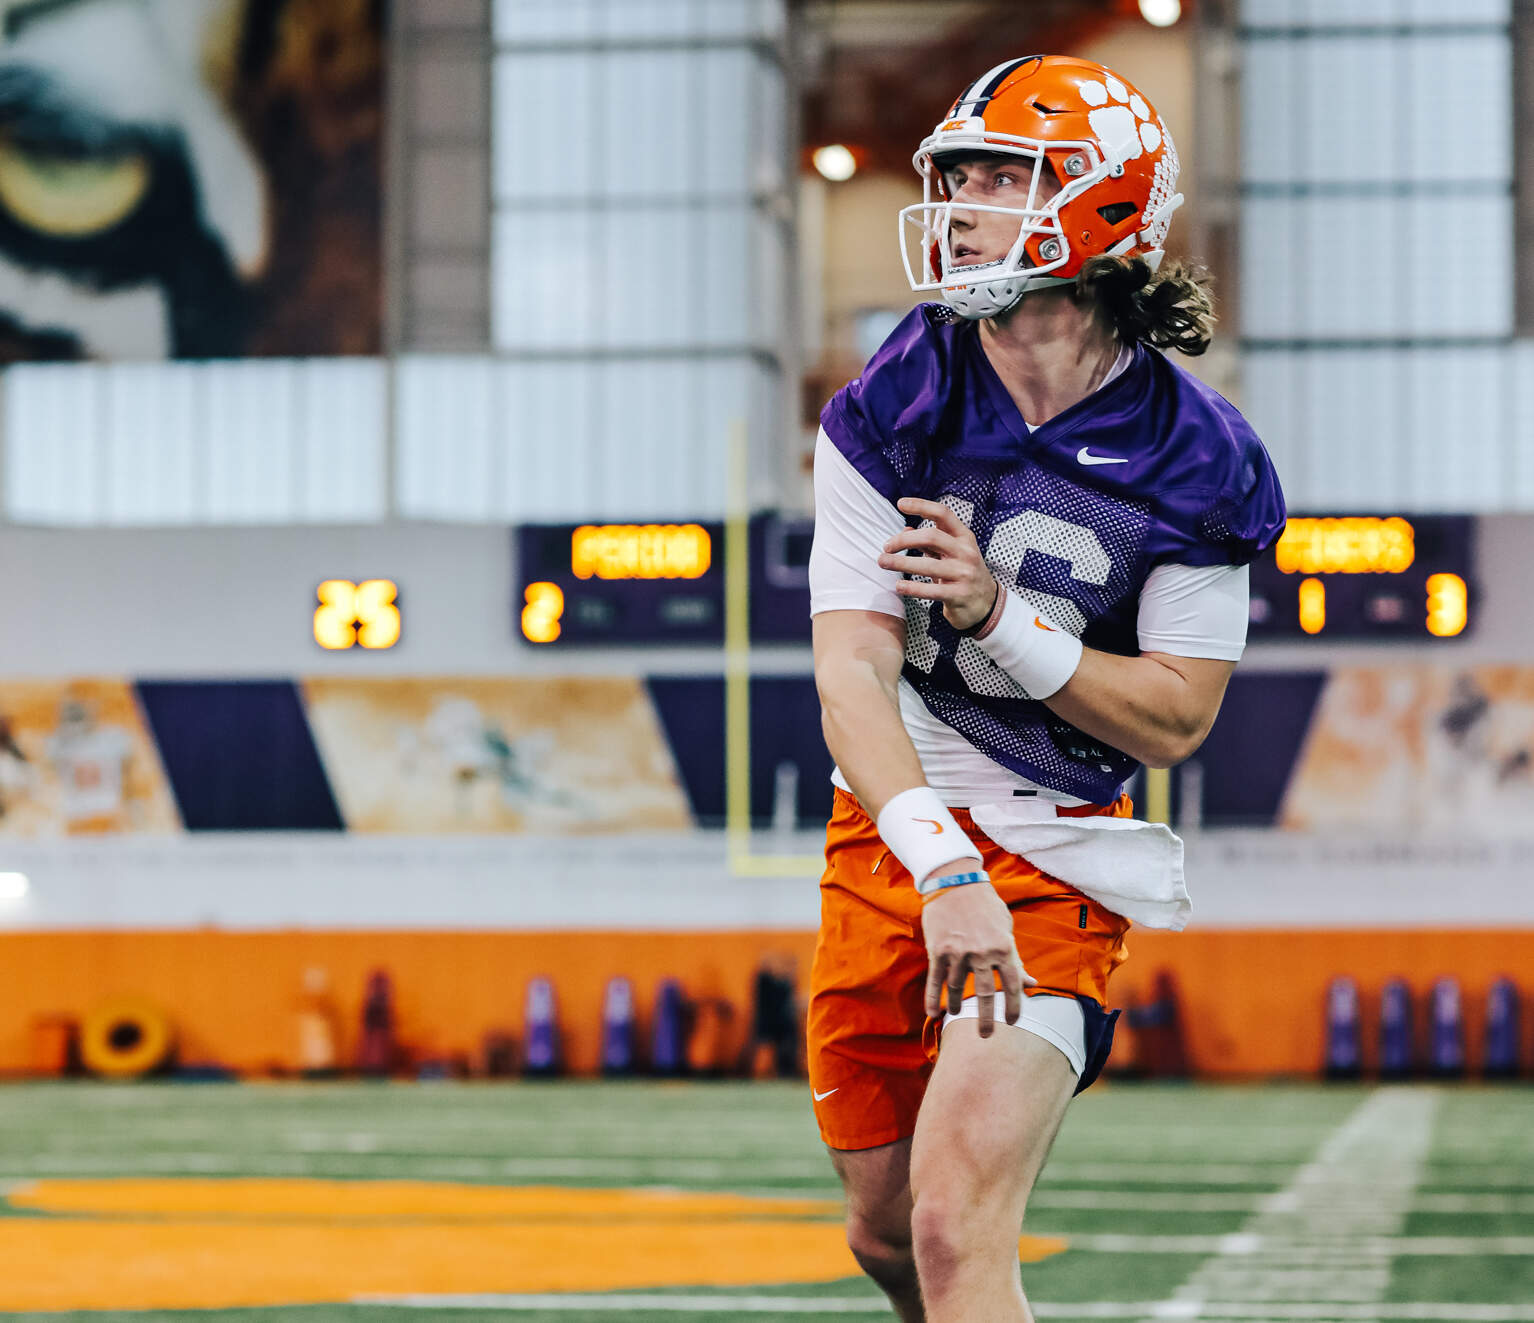 ACC Network, ESPN2 and NFL Network to Air Trevor Lawrence Pro Day